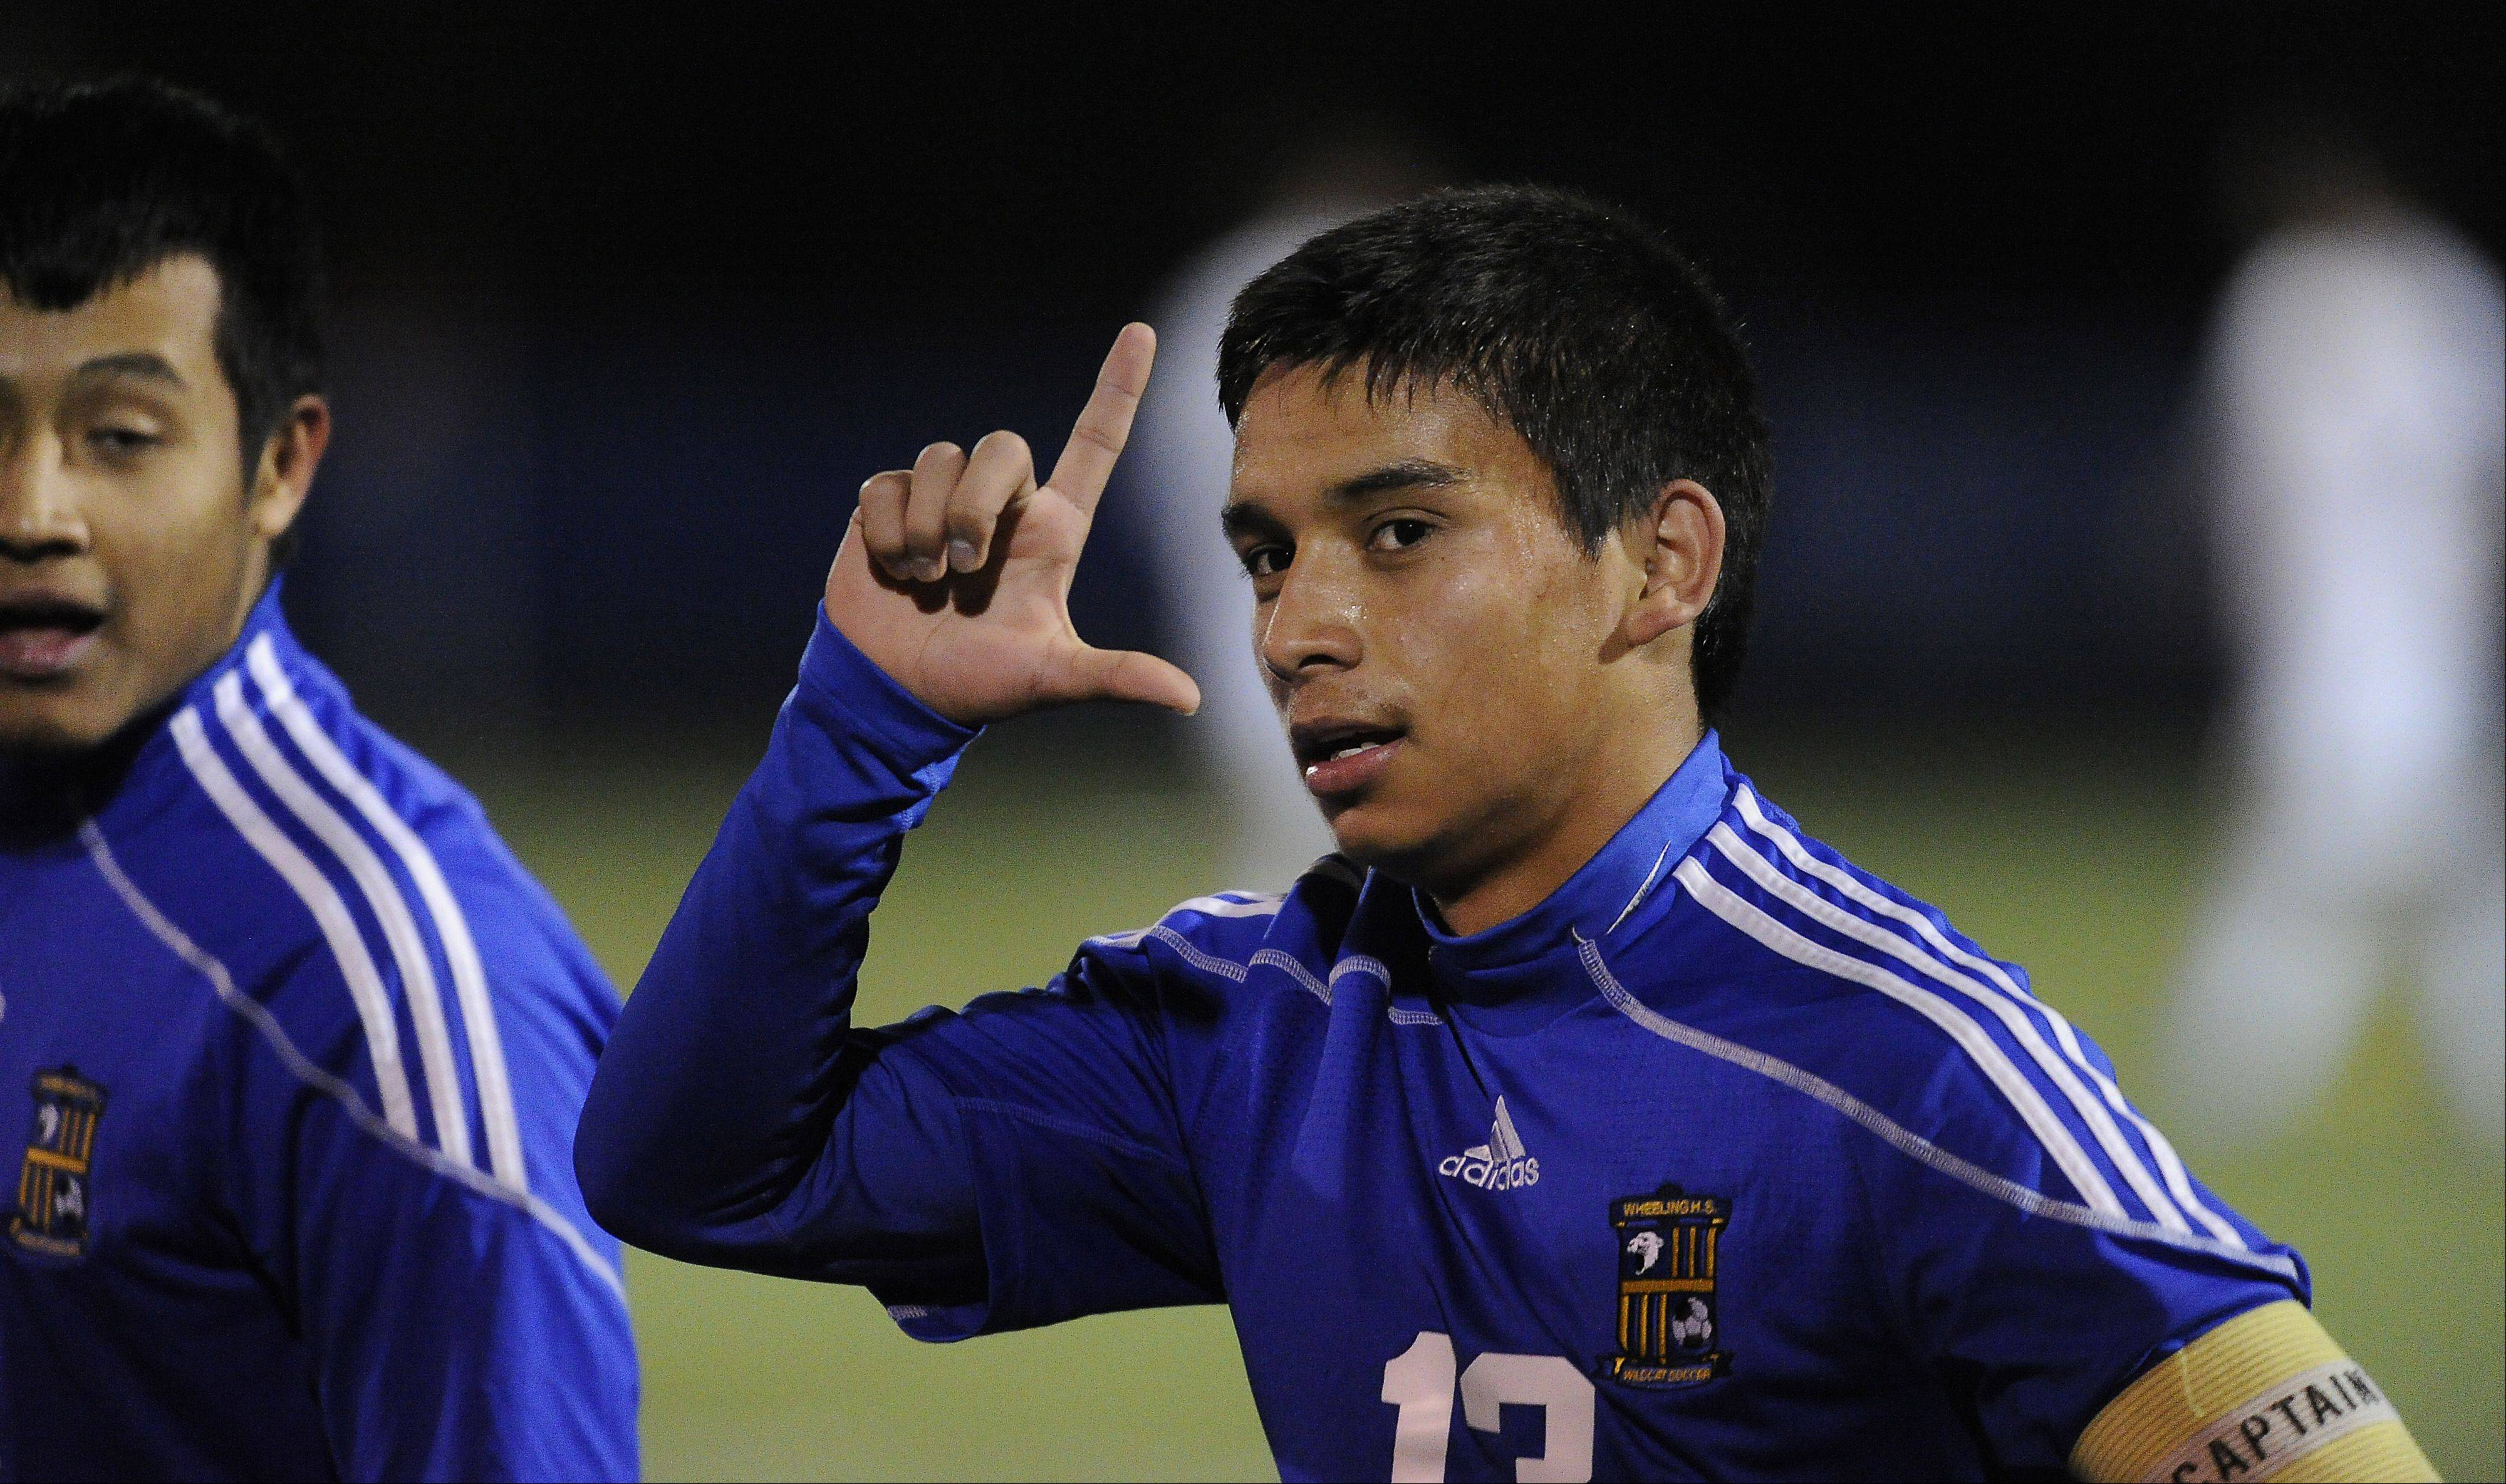 Wheeling's Jose Garcia scores the second goal as he looks to fans in the first period of the Class 3A boys soccer state semifinals at Hoffman Estates on Friday.